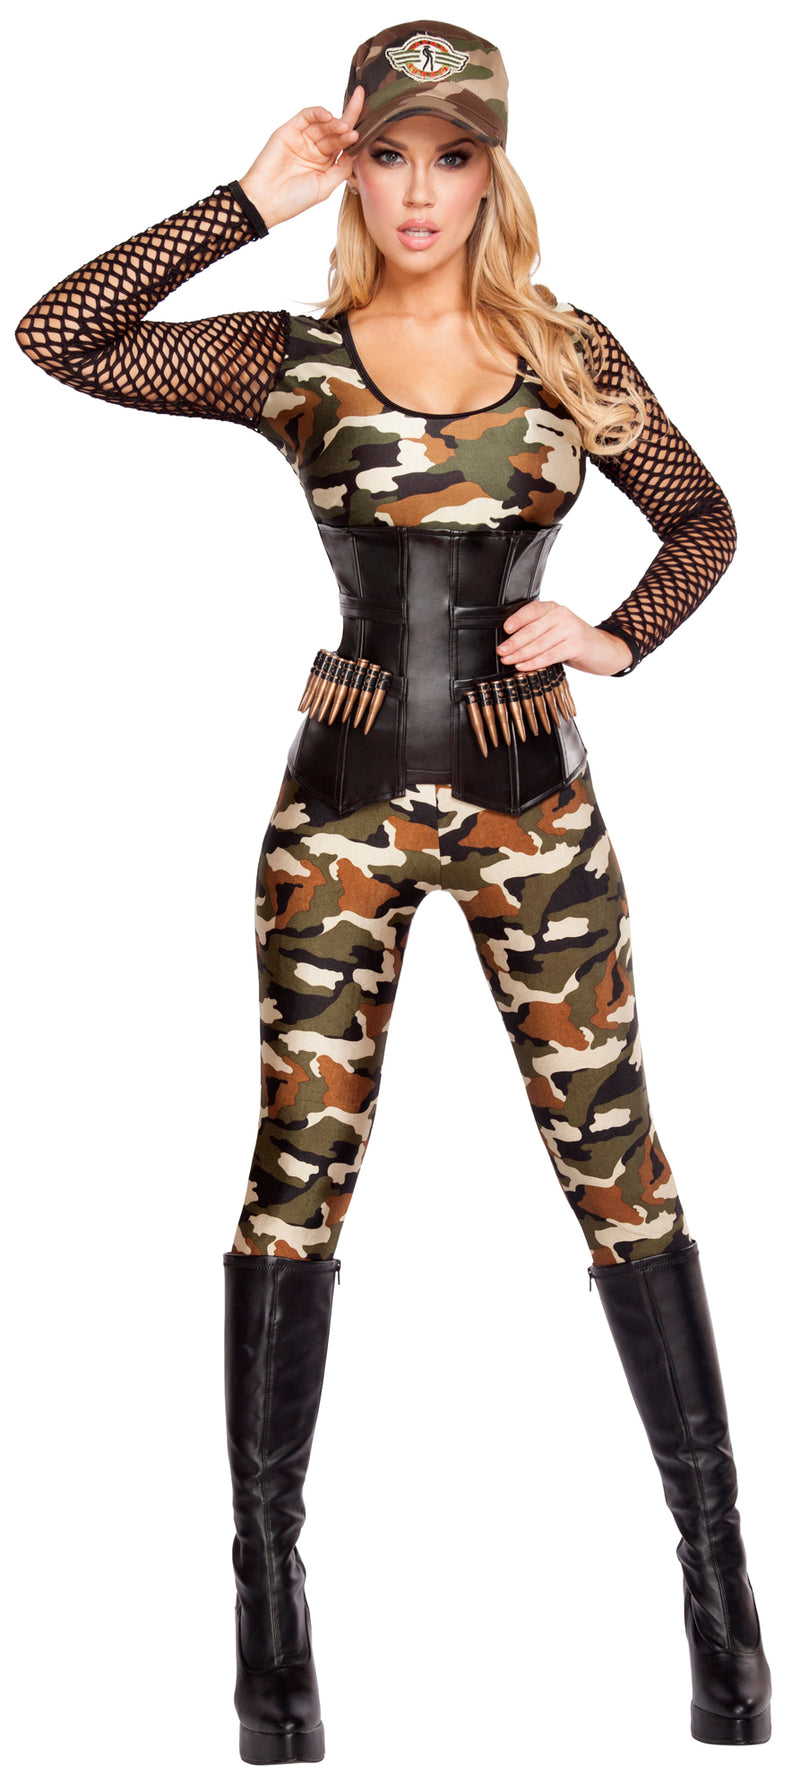 Lusty Lieutenant Army Camouflage Costume RM4592 Front